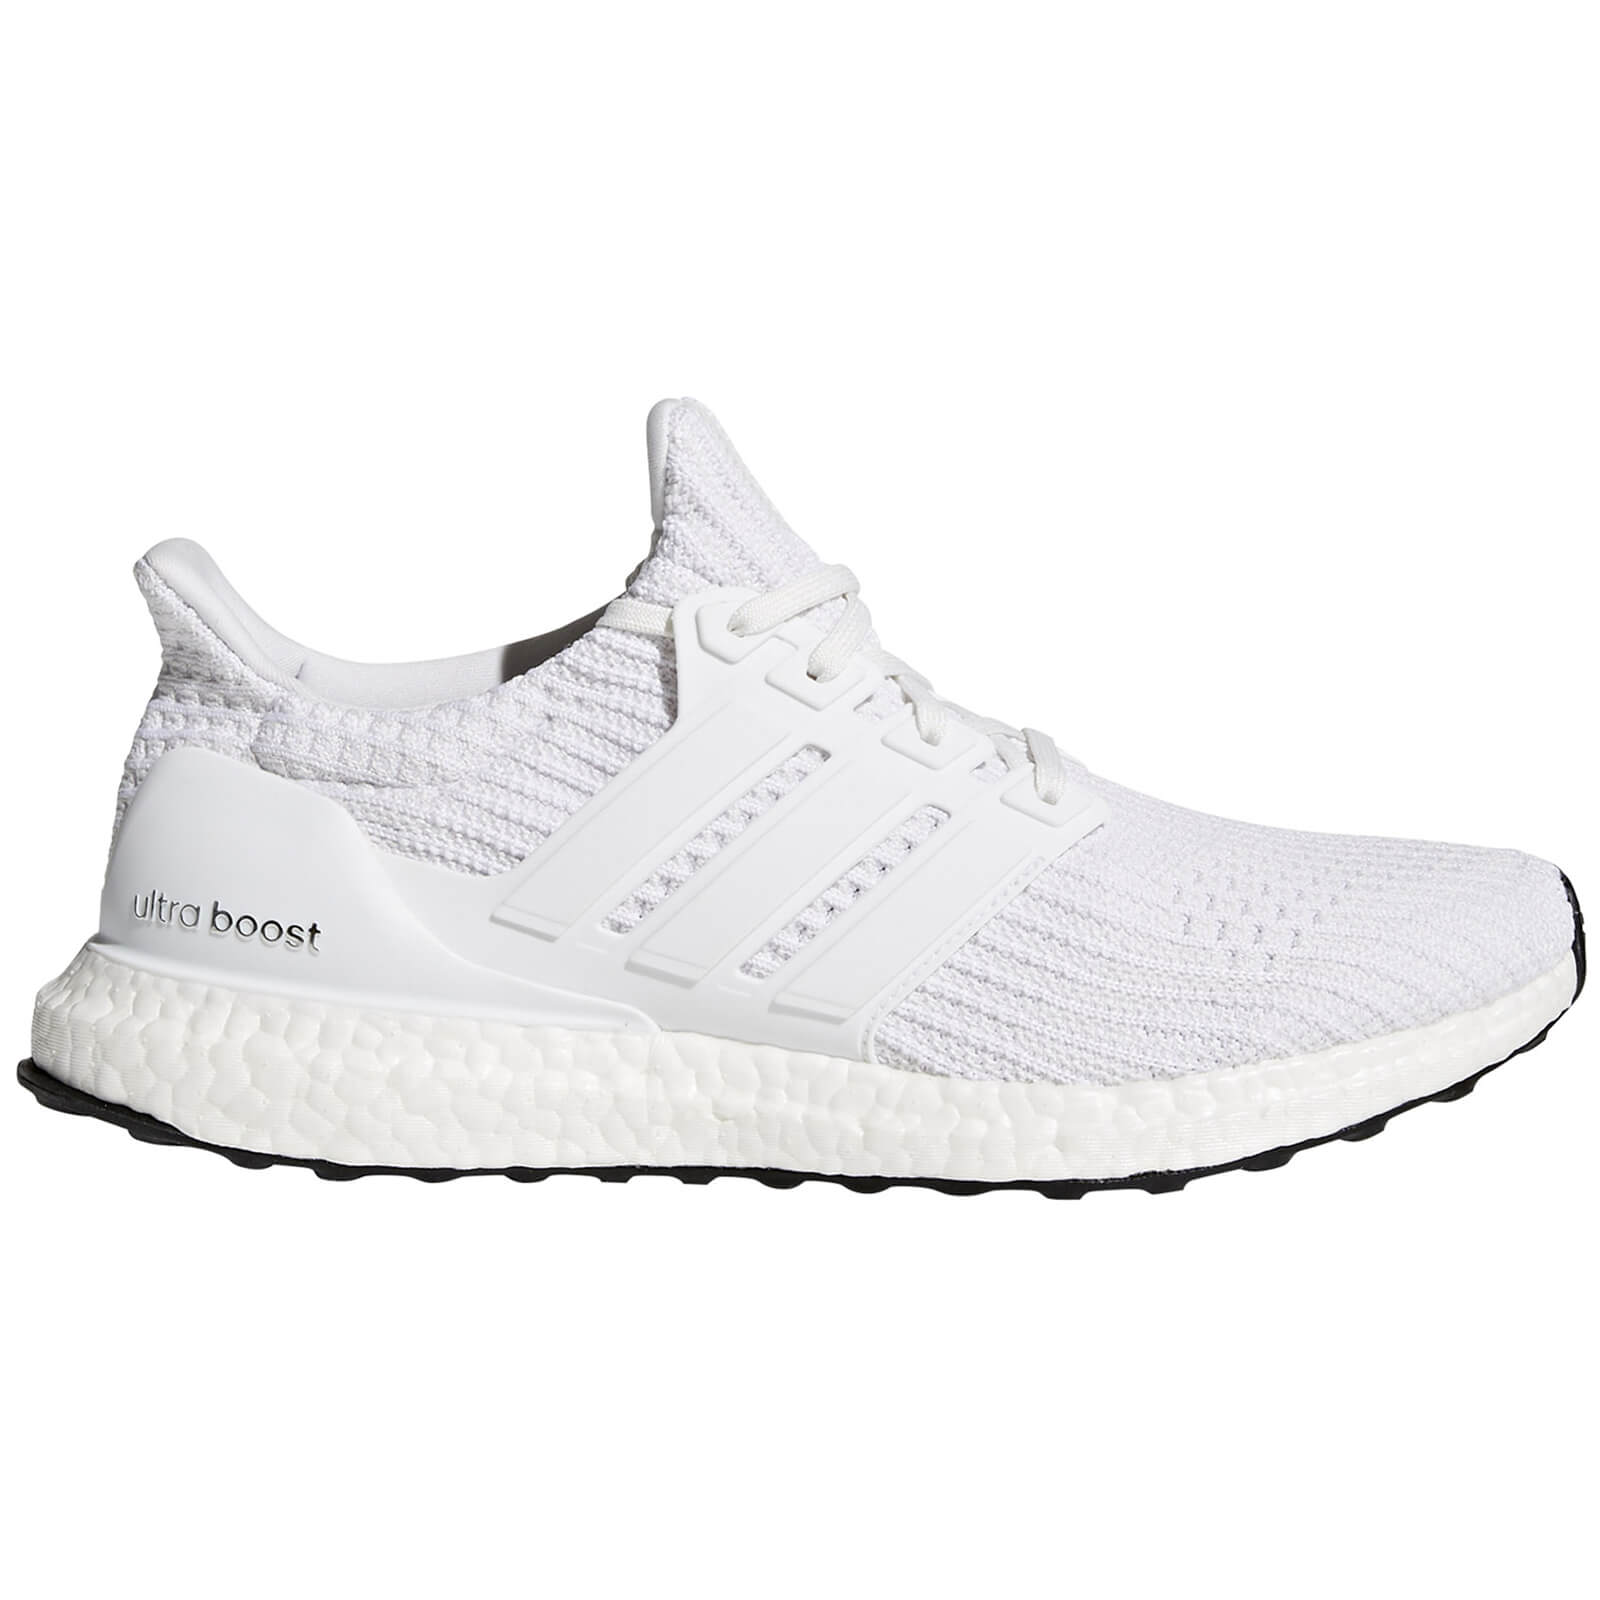 4216d5a0929b8 adidas Ultra Boost Running Shoes - White